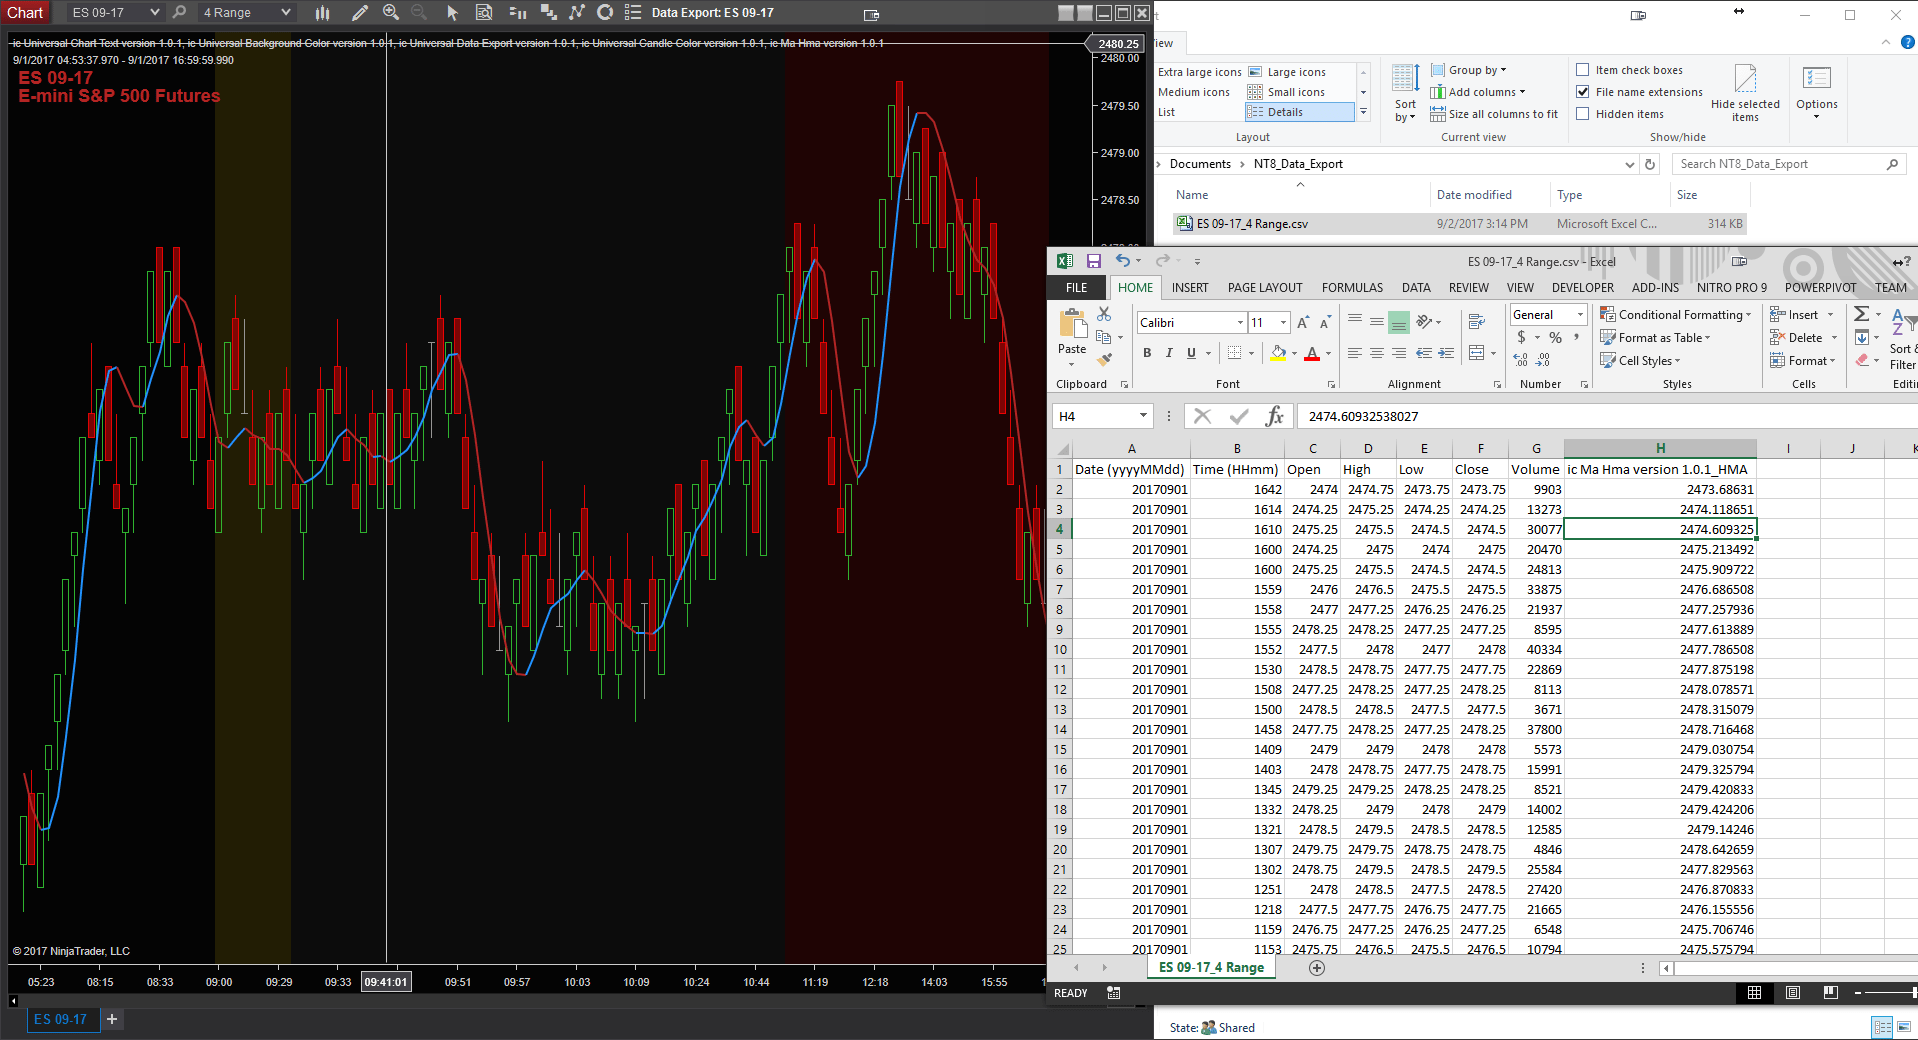 Data Export | Free NinjaTrader Indicator | The Indicator Club